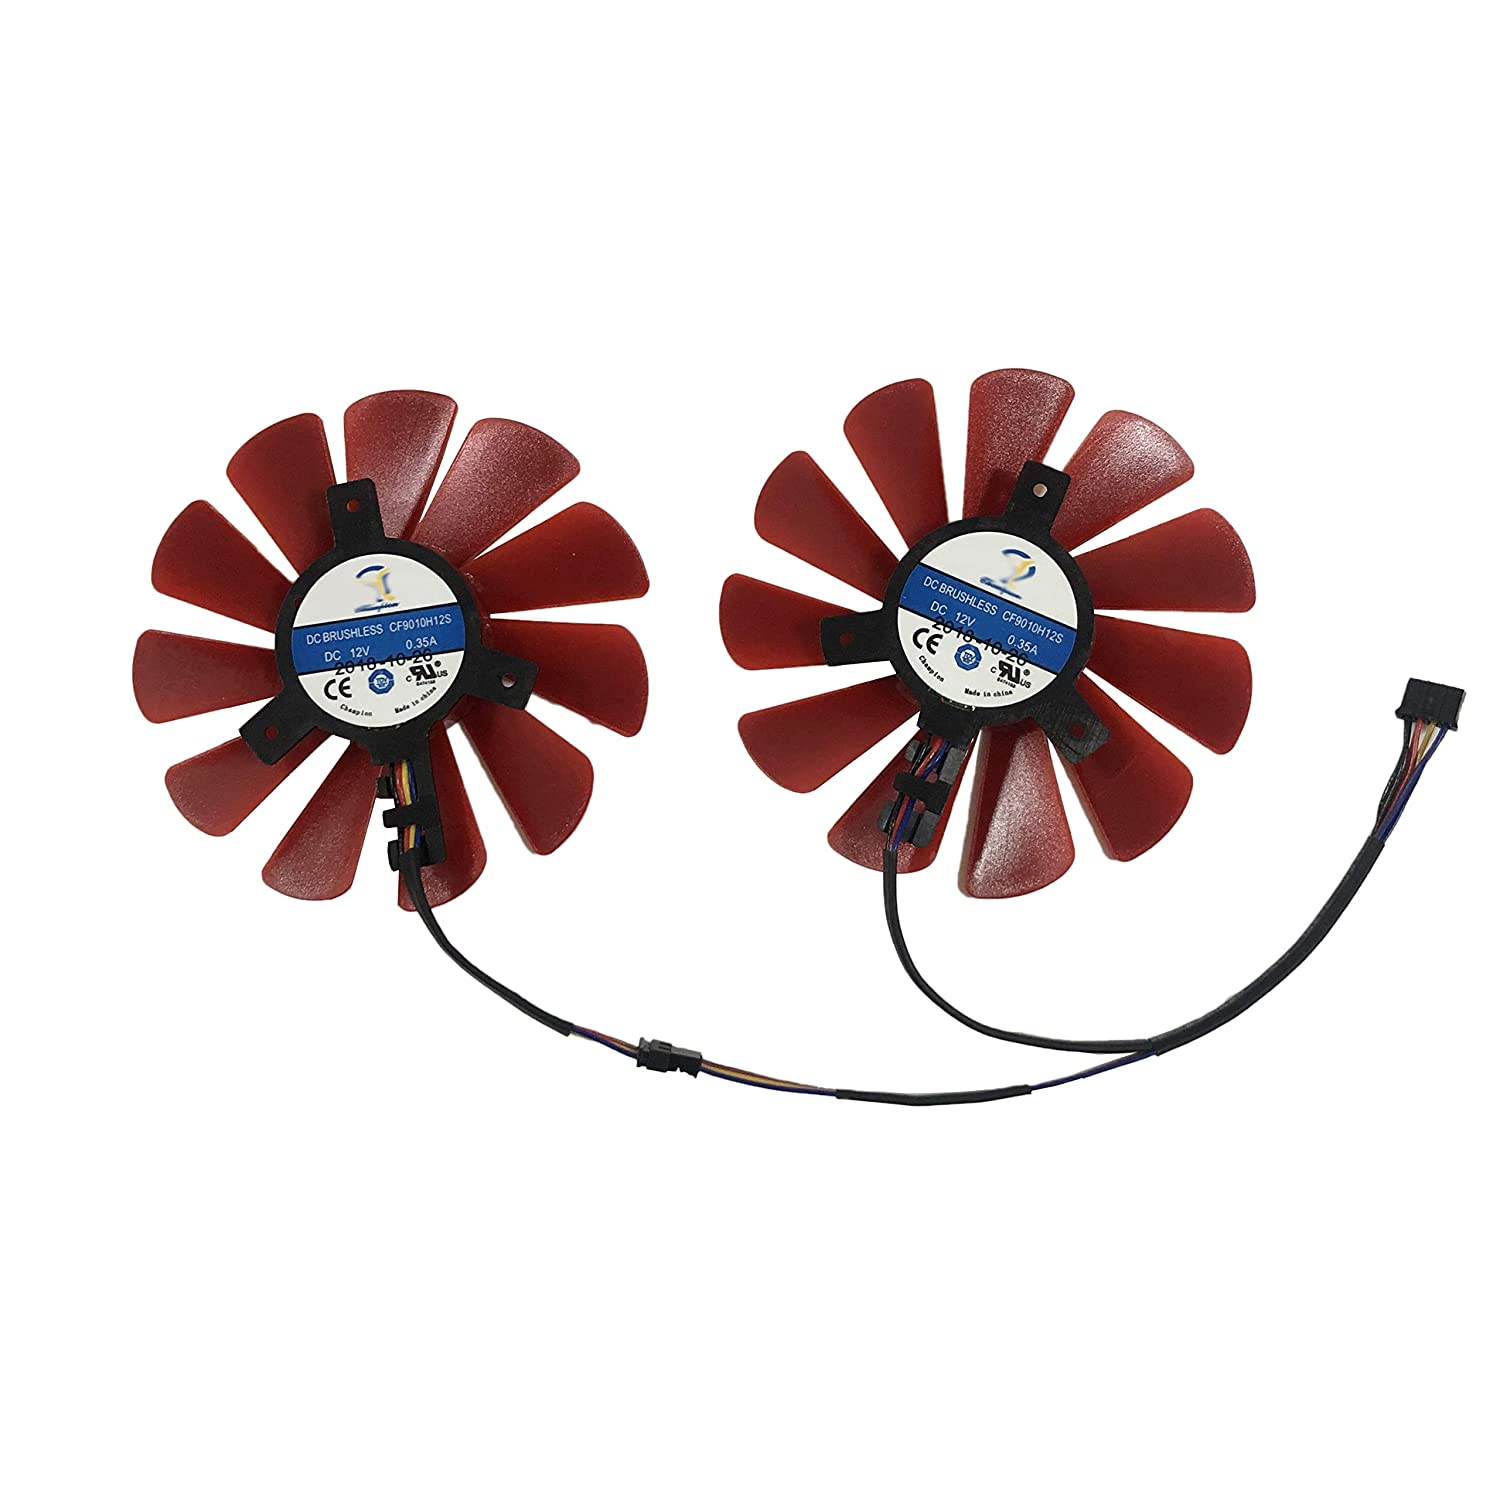 Graphics Max 49% OFF Card Fans CF9010H12S GPU Cooler R9 Max 87% OFF RX480 RX470 XFX for